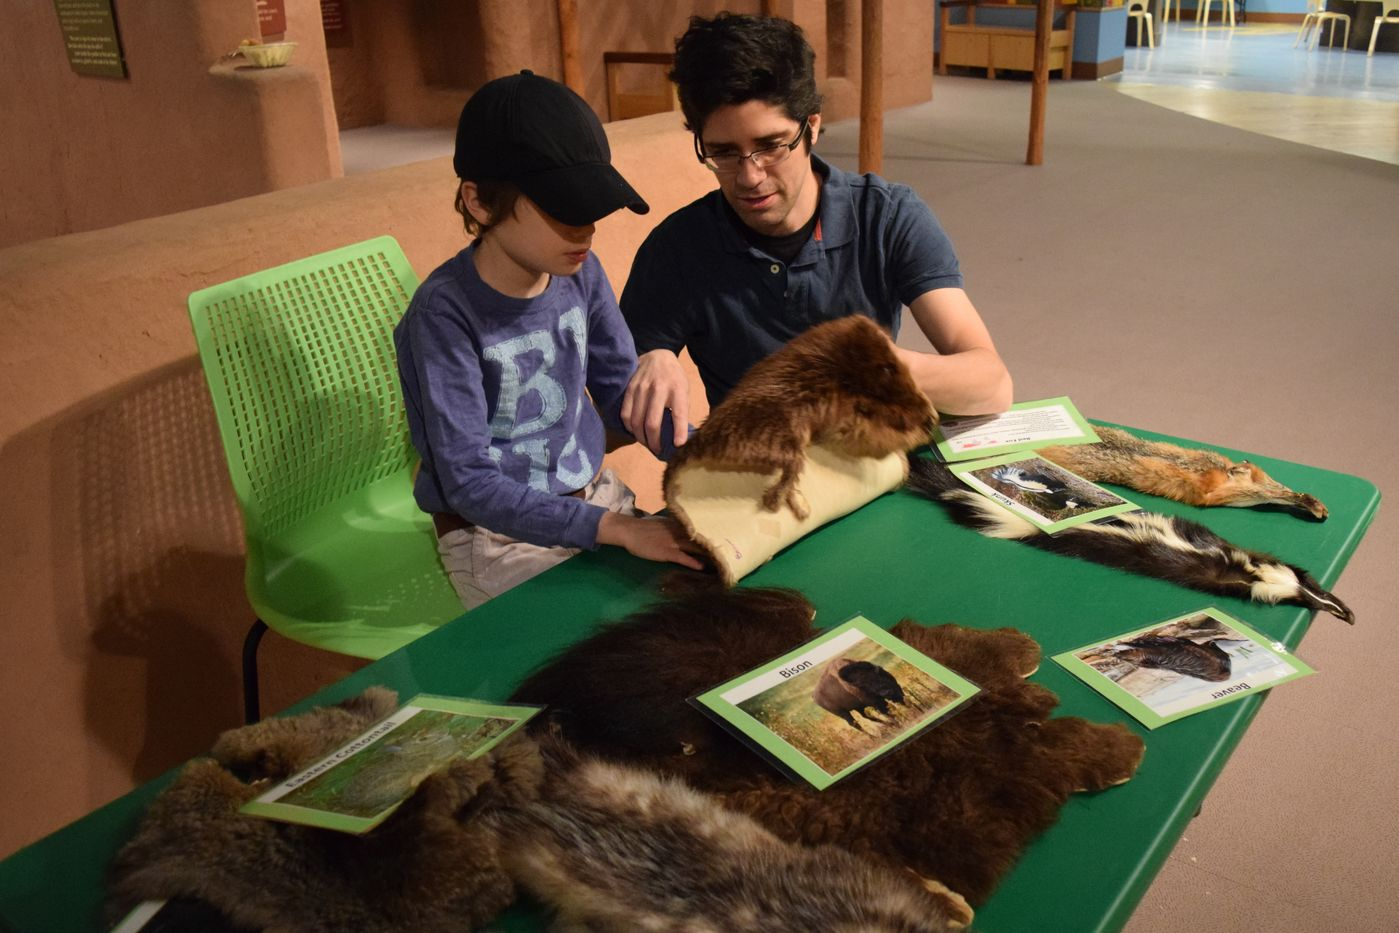 Caregiver and child sit a table in front a replica pueblo in the Crown Family PlayLab. Together, they study an animal pelt.